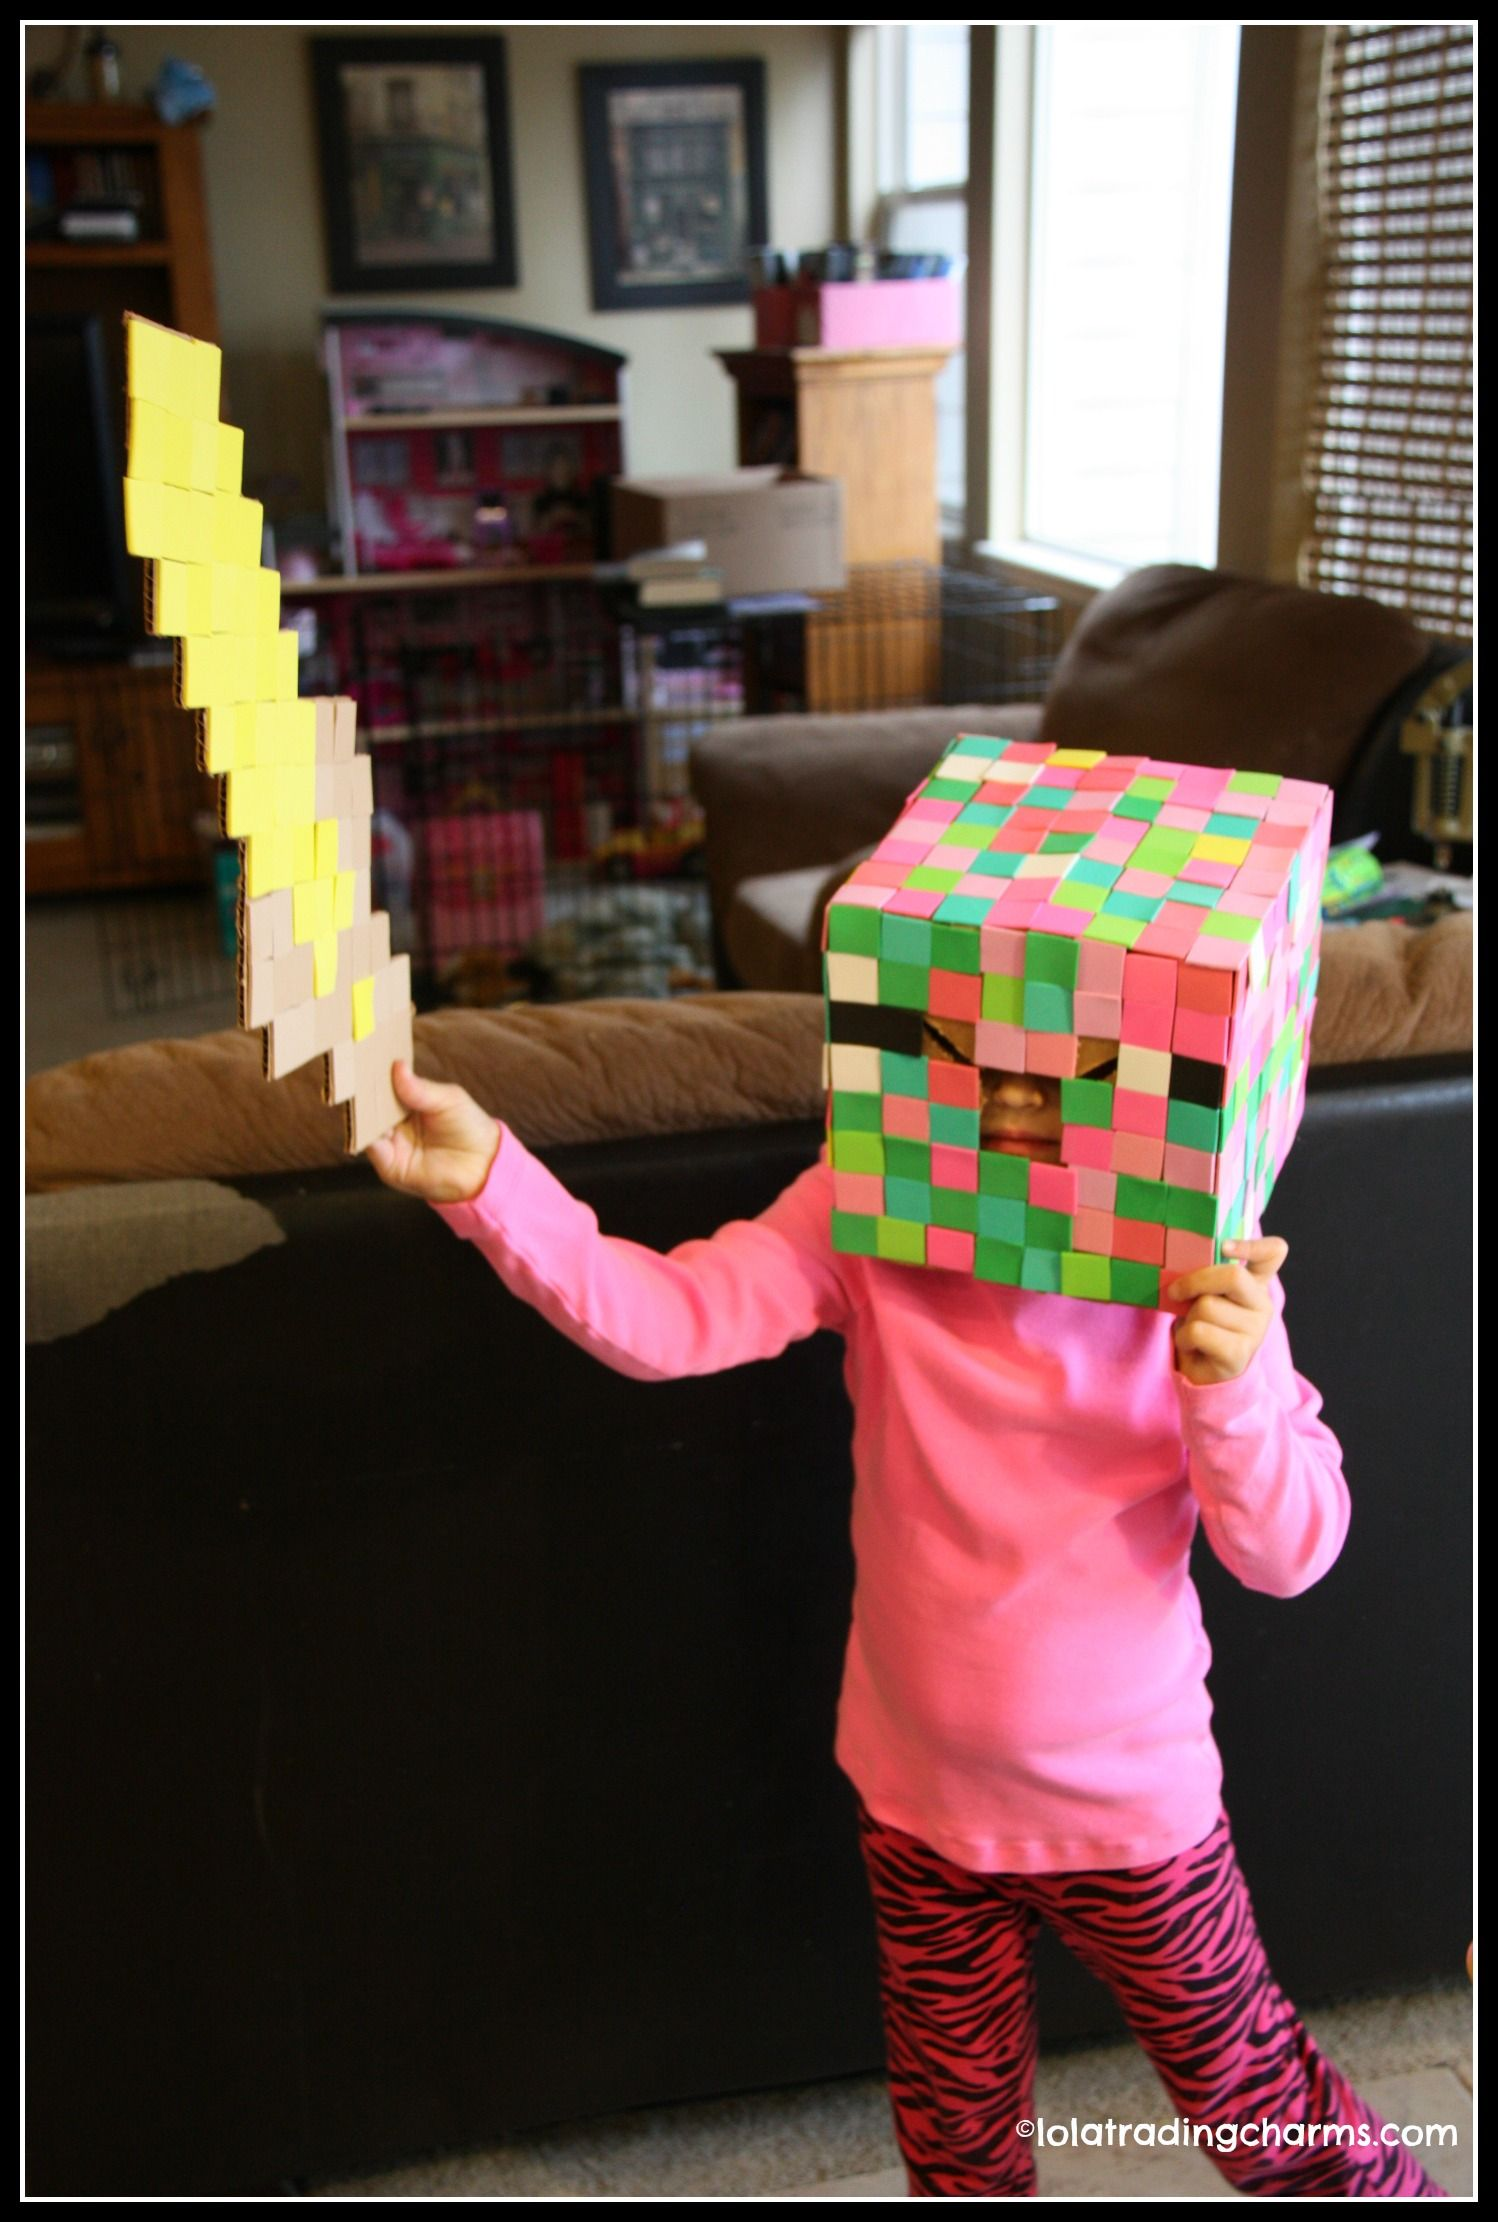 3 Easy Diy Storage Ideas For Small Kitchen: Super Easy DIY Minecraft Halloween Costume For Kids. My